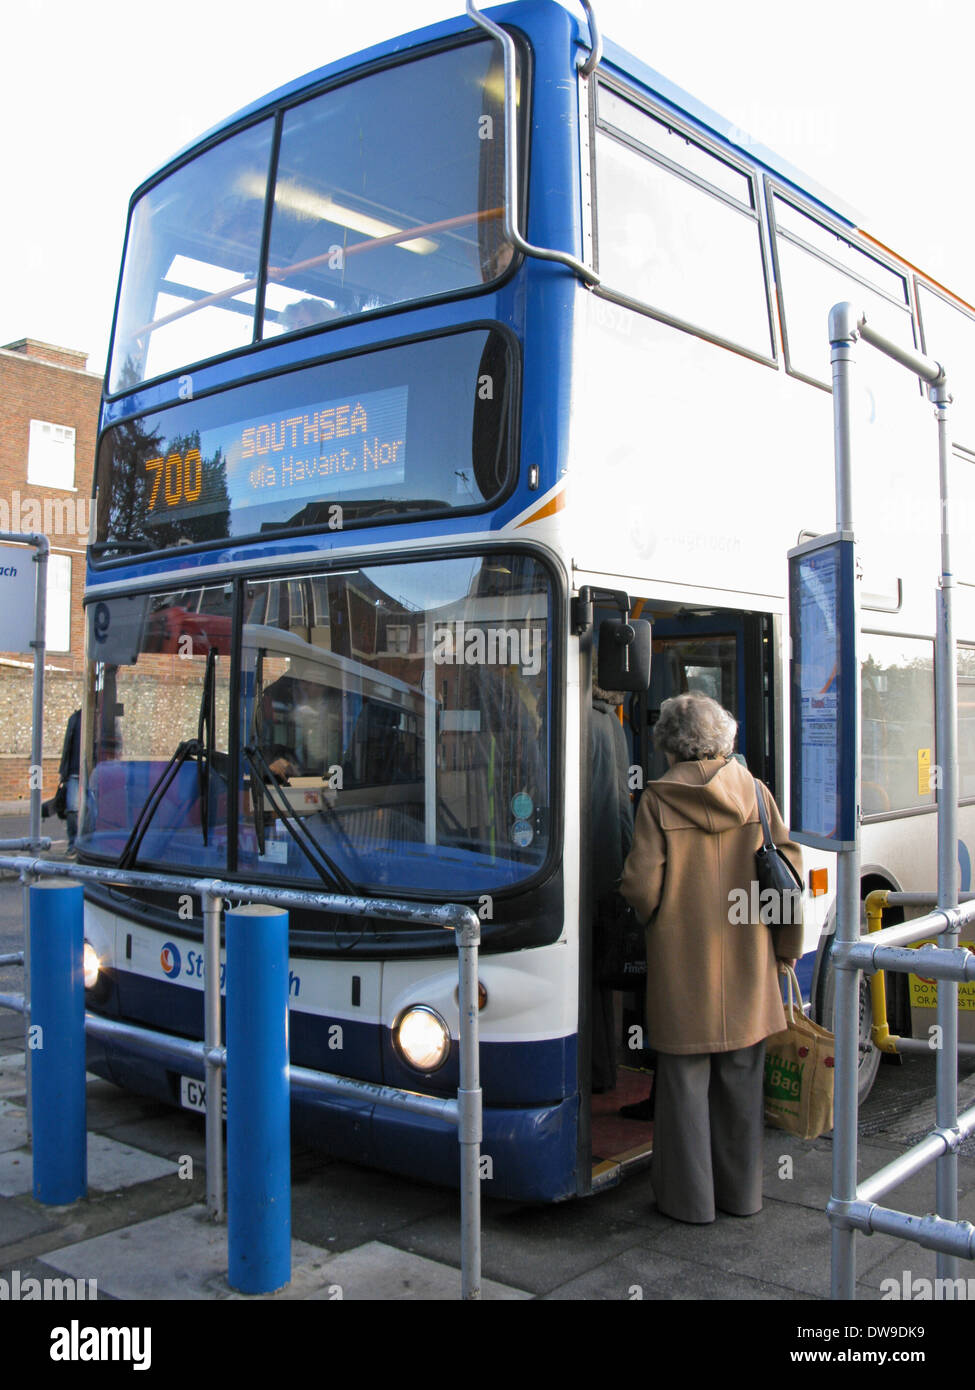 People Boarding A 700 Coastliner Stagecoach Bus At Chichester Station West Sussex UK